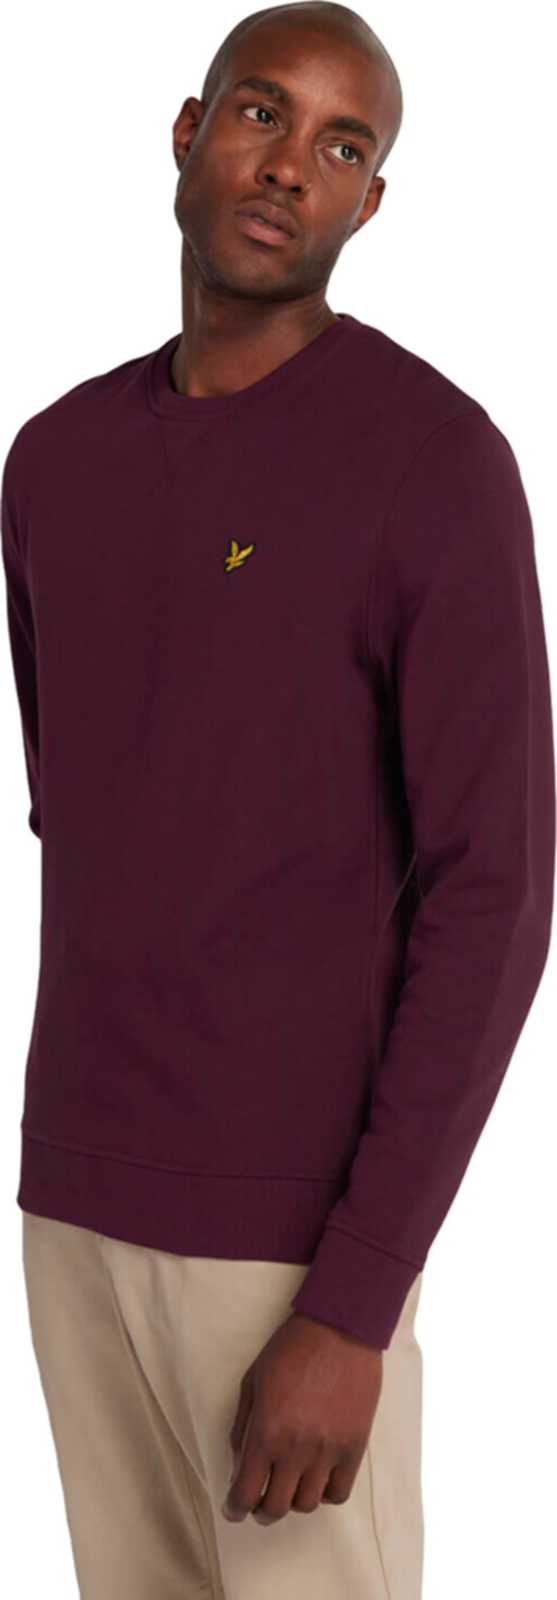 Lyle & Scott Crew Neck Sweatshirt Burgundy